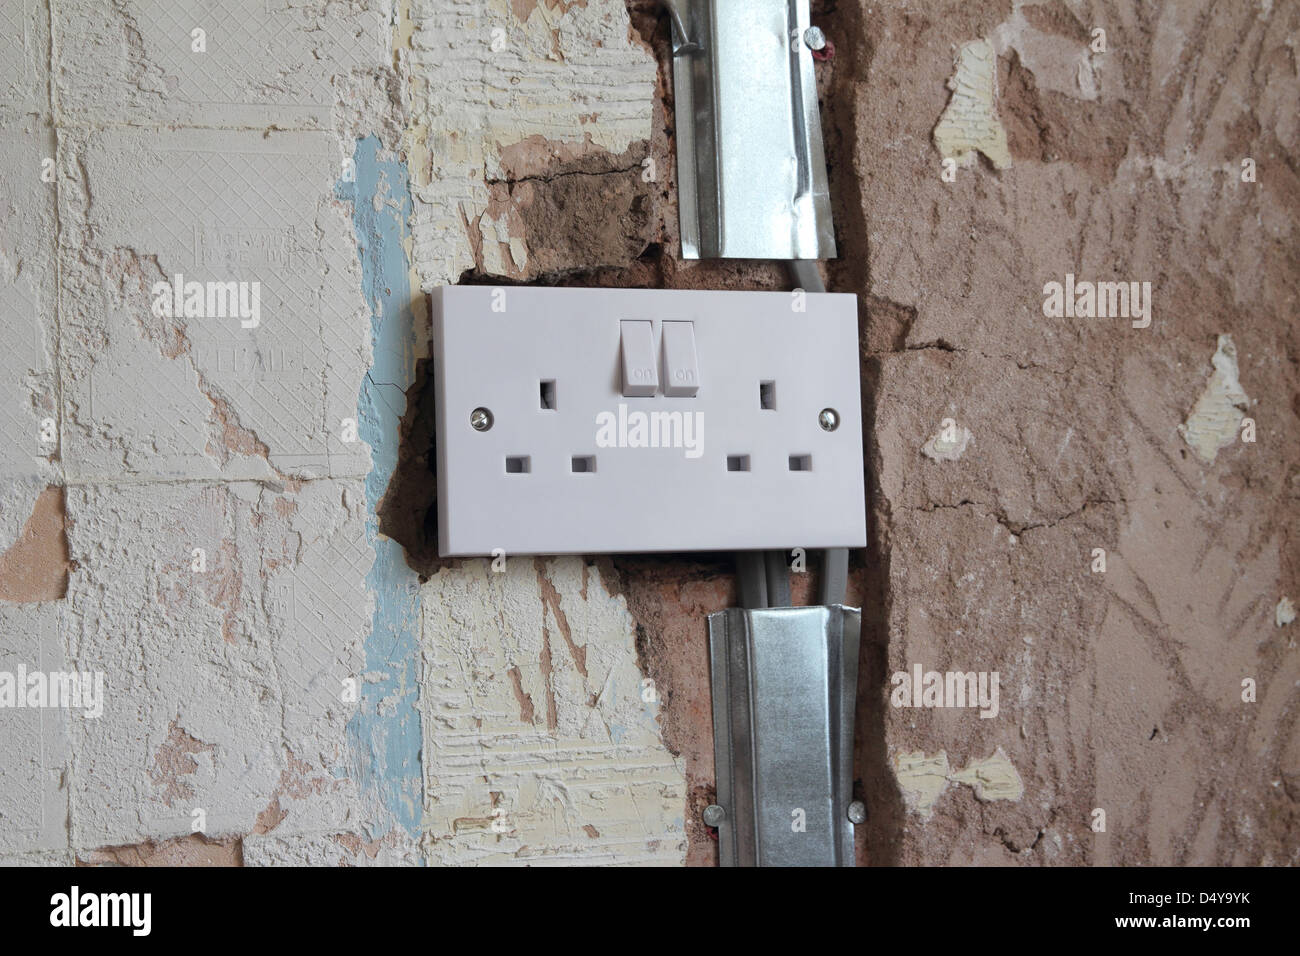 Rewiring A Mobile Home Schematics Data Wiring Diagrams Rewire Old House Newly Installed Twin Electrical Socket As Part Of Domestic Stock Photo 54690263 Alamy For Electricity Your